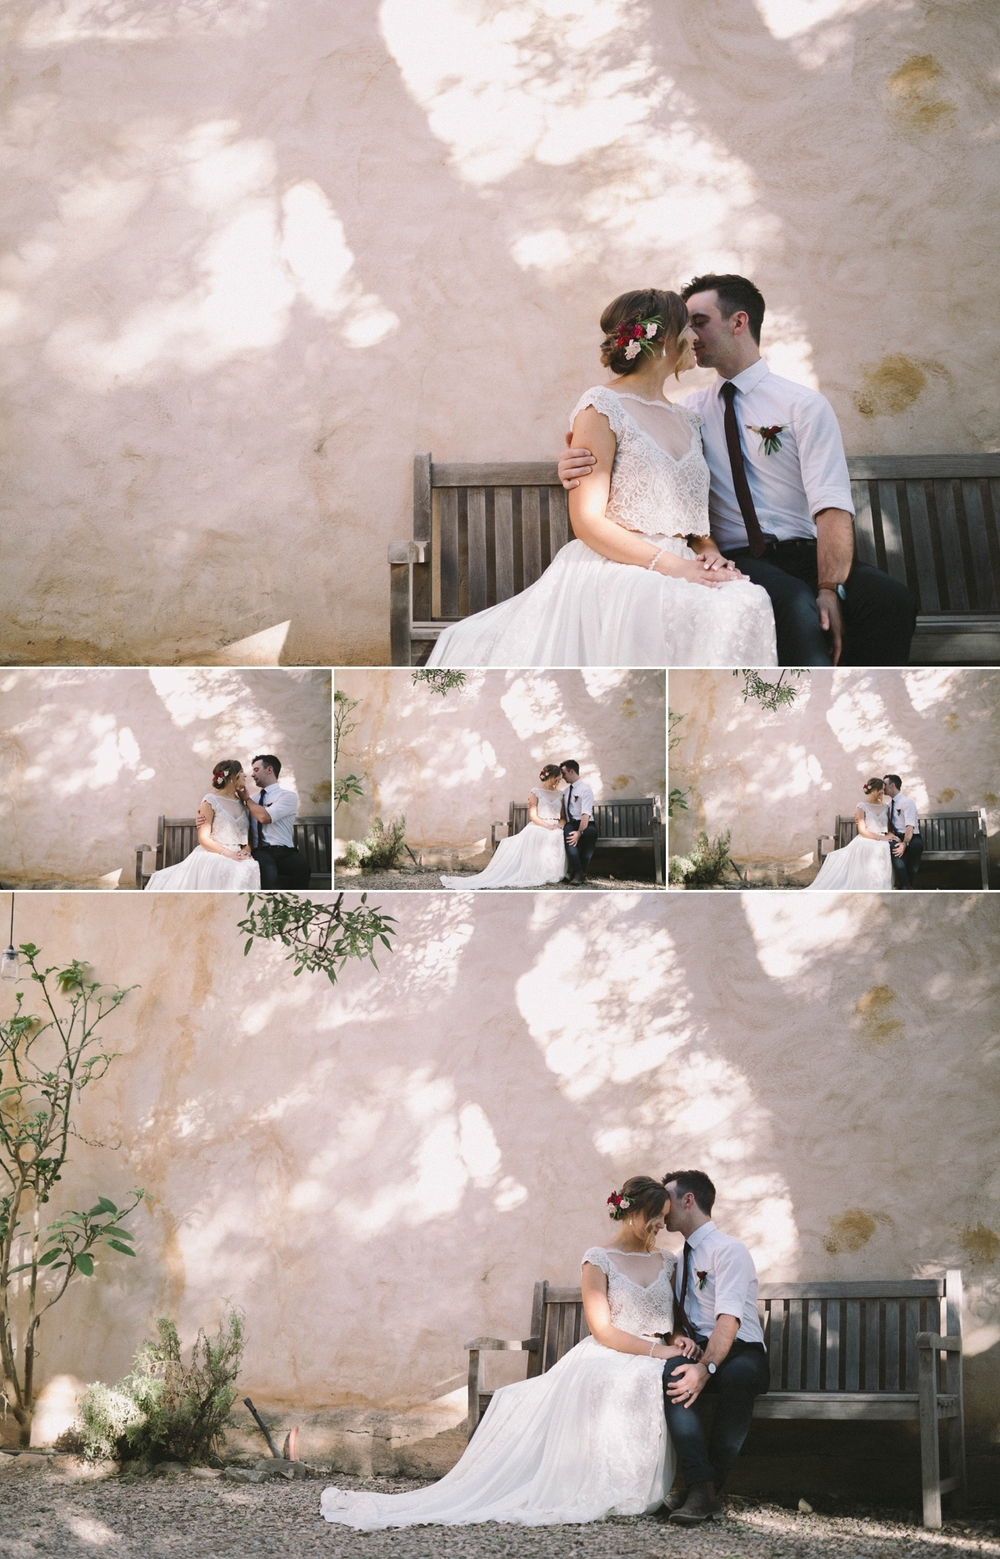 Tessa & Josh - Al Ru Farm Wedding - Adelaide Wedding Photographer - www.katherineschultzphotography.com